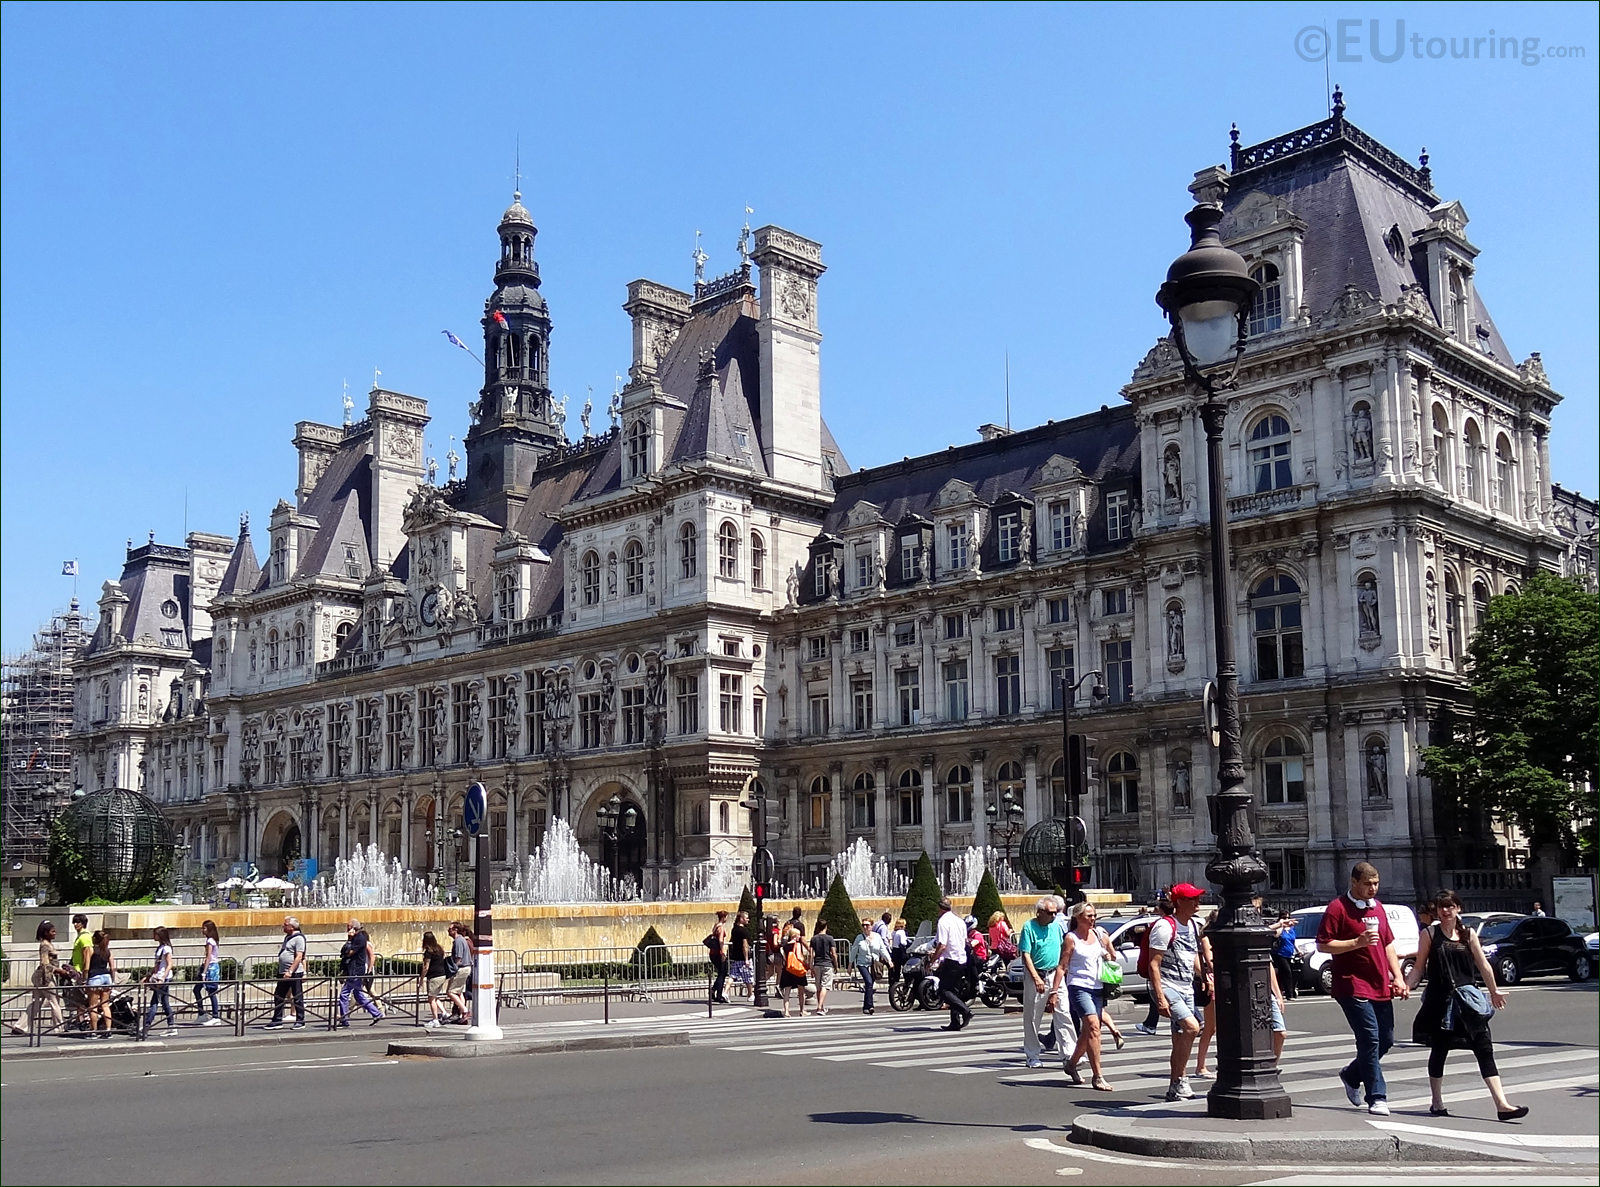 Hd photos of hotel de ville in paris france page 1 for Accouchement en piscine en france